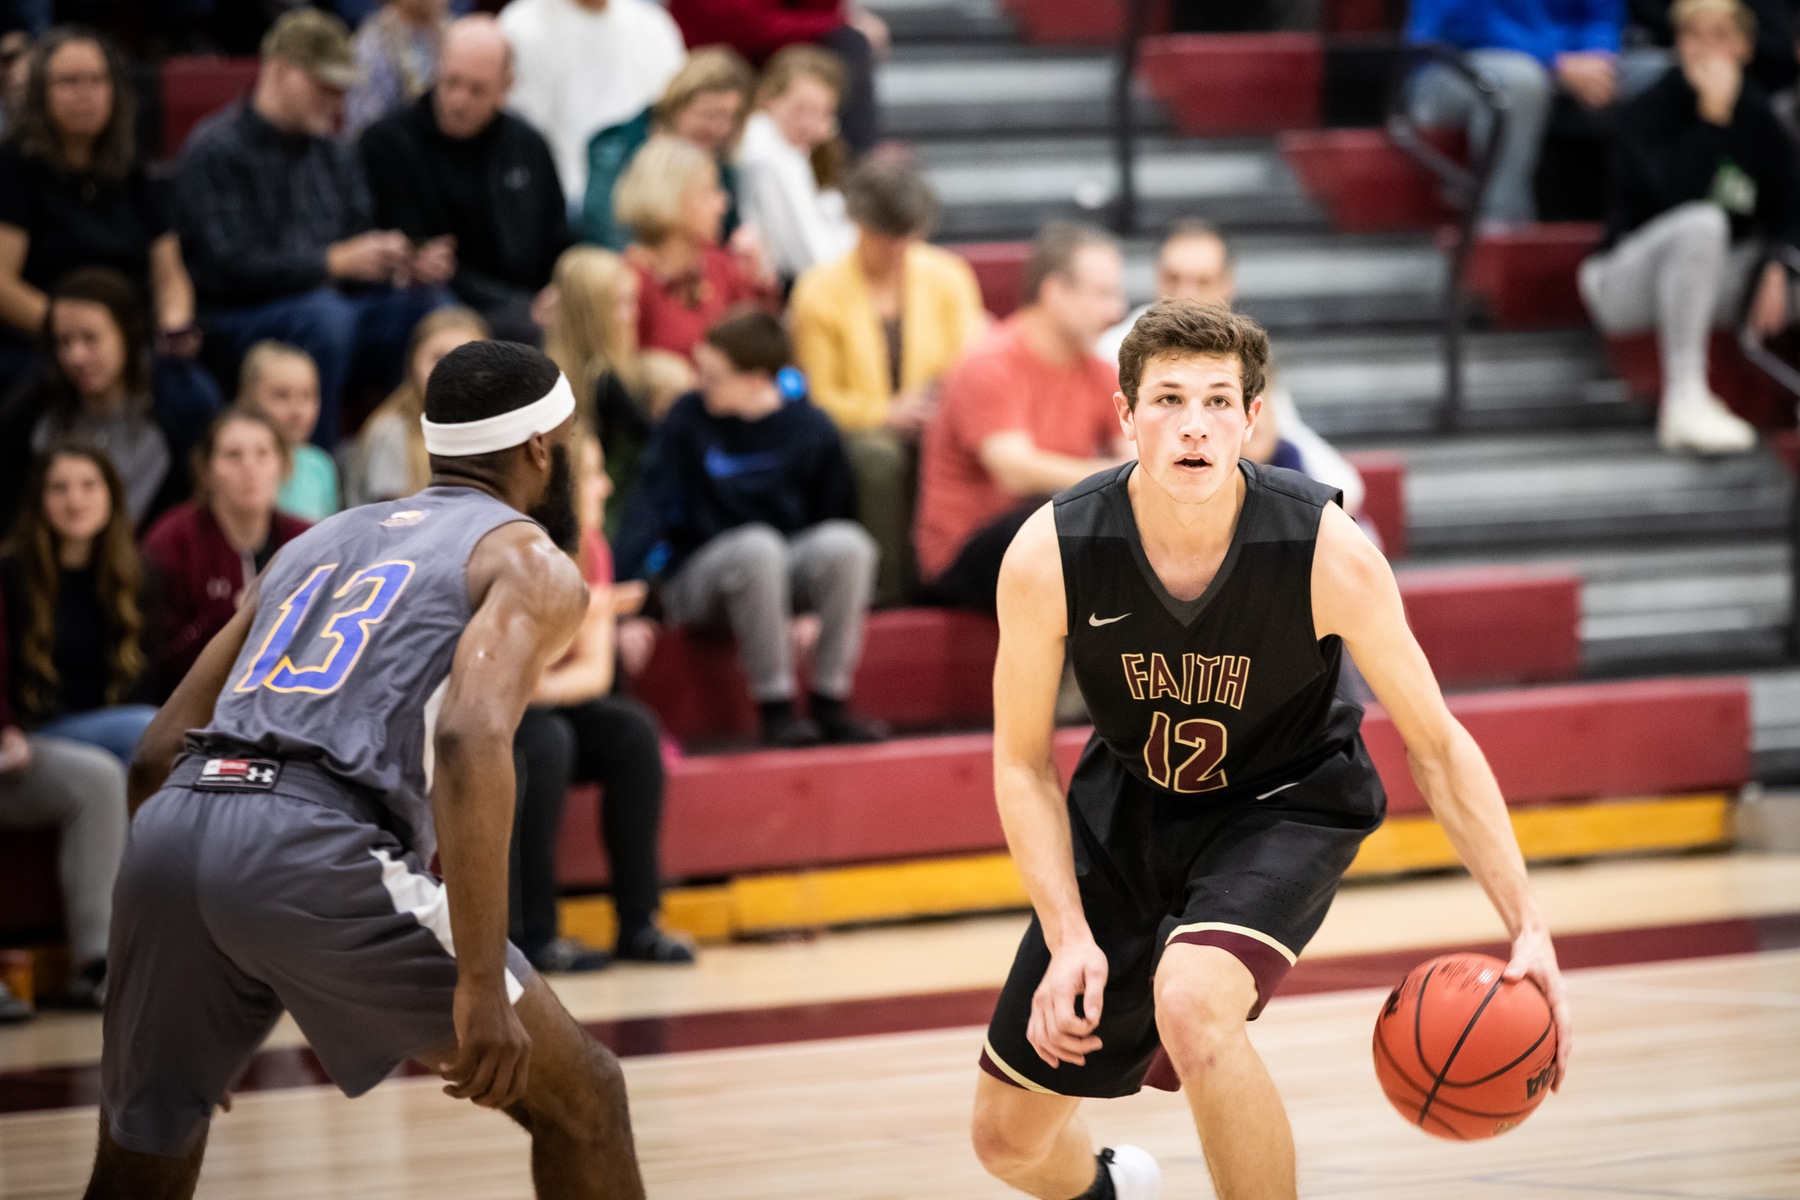 Nathan Keck's 33 points weren't enough against Kansas Christian